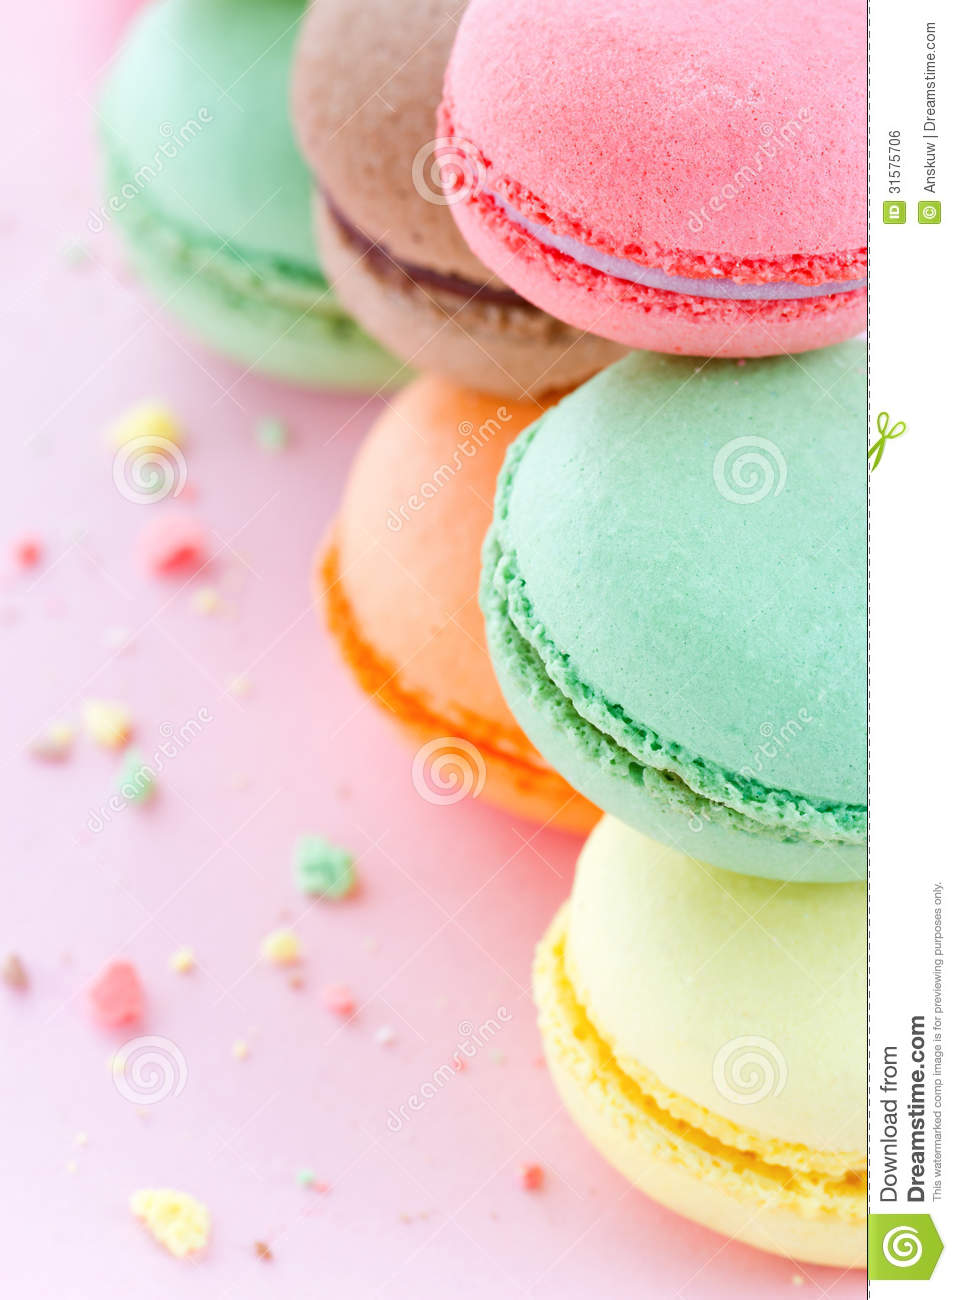 Cute Macaroons Wallpaper Colorful Macaroons On Pastel Pink Background Stock Photo